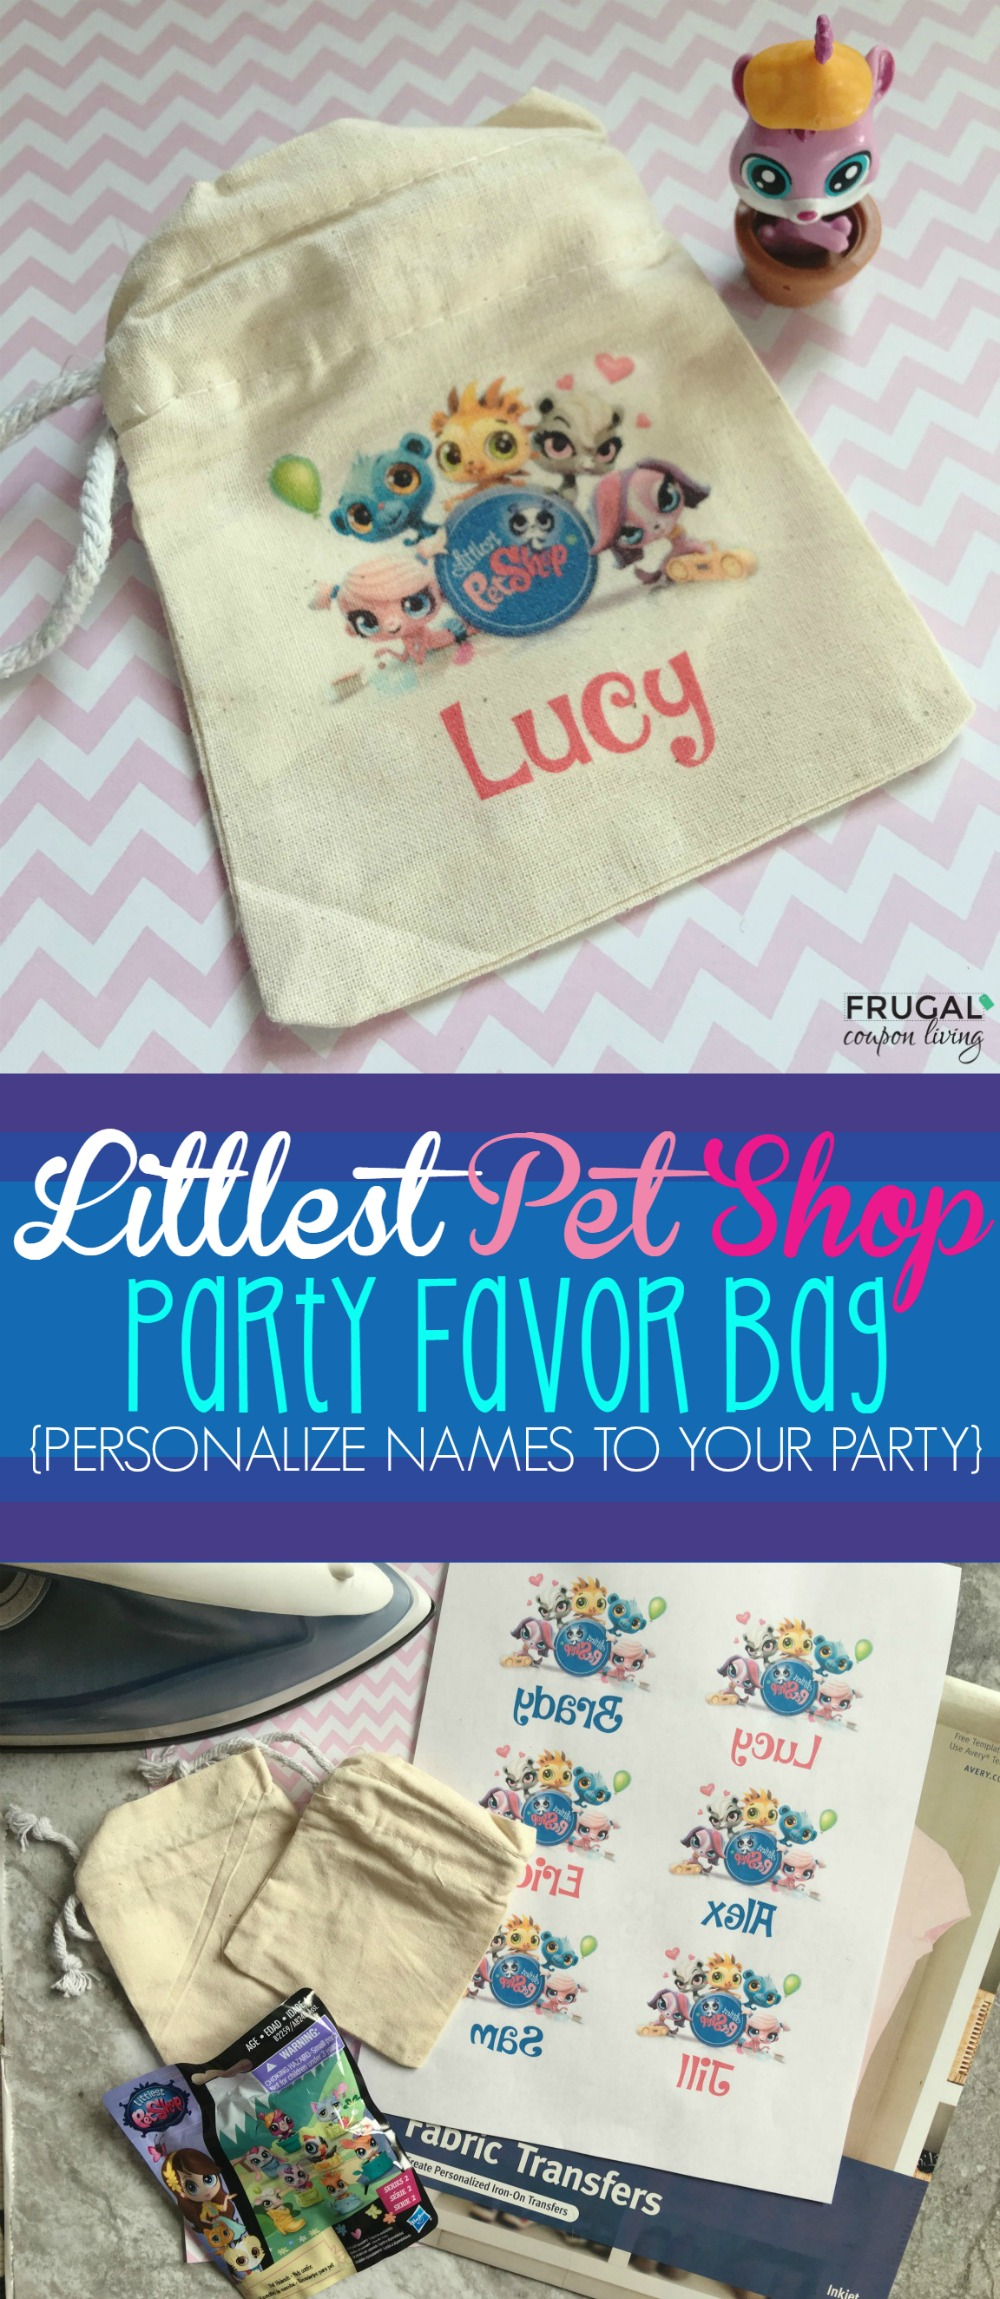 Littlest-Pet-Shop-Party-Favor-Bag-Frugal-Coupon-Living